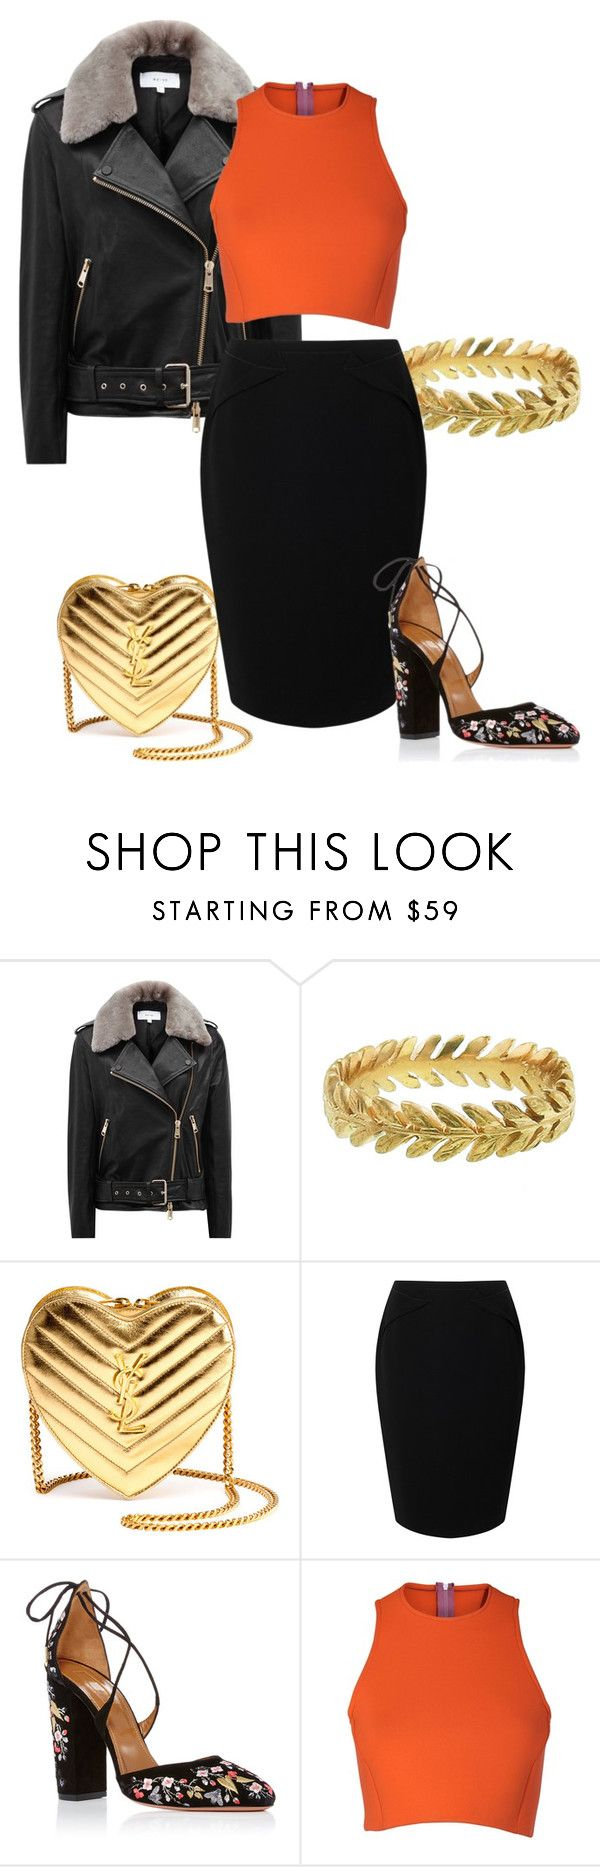 """""""Trending items"""" by grateful-angel ❤ liked on Polyvore featuring Reiss, Cathy Waterman, Yves Saint Laurent, Jacques Vert, Aquazzura and Sydney-Davies"""